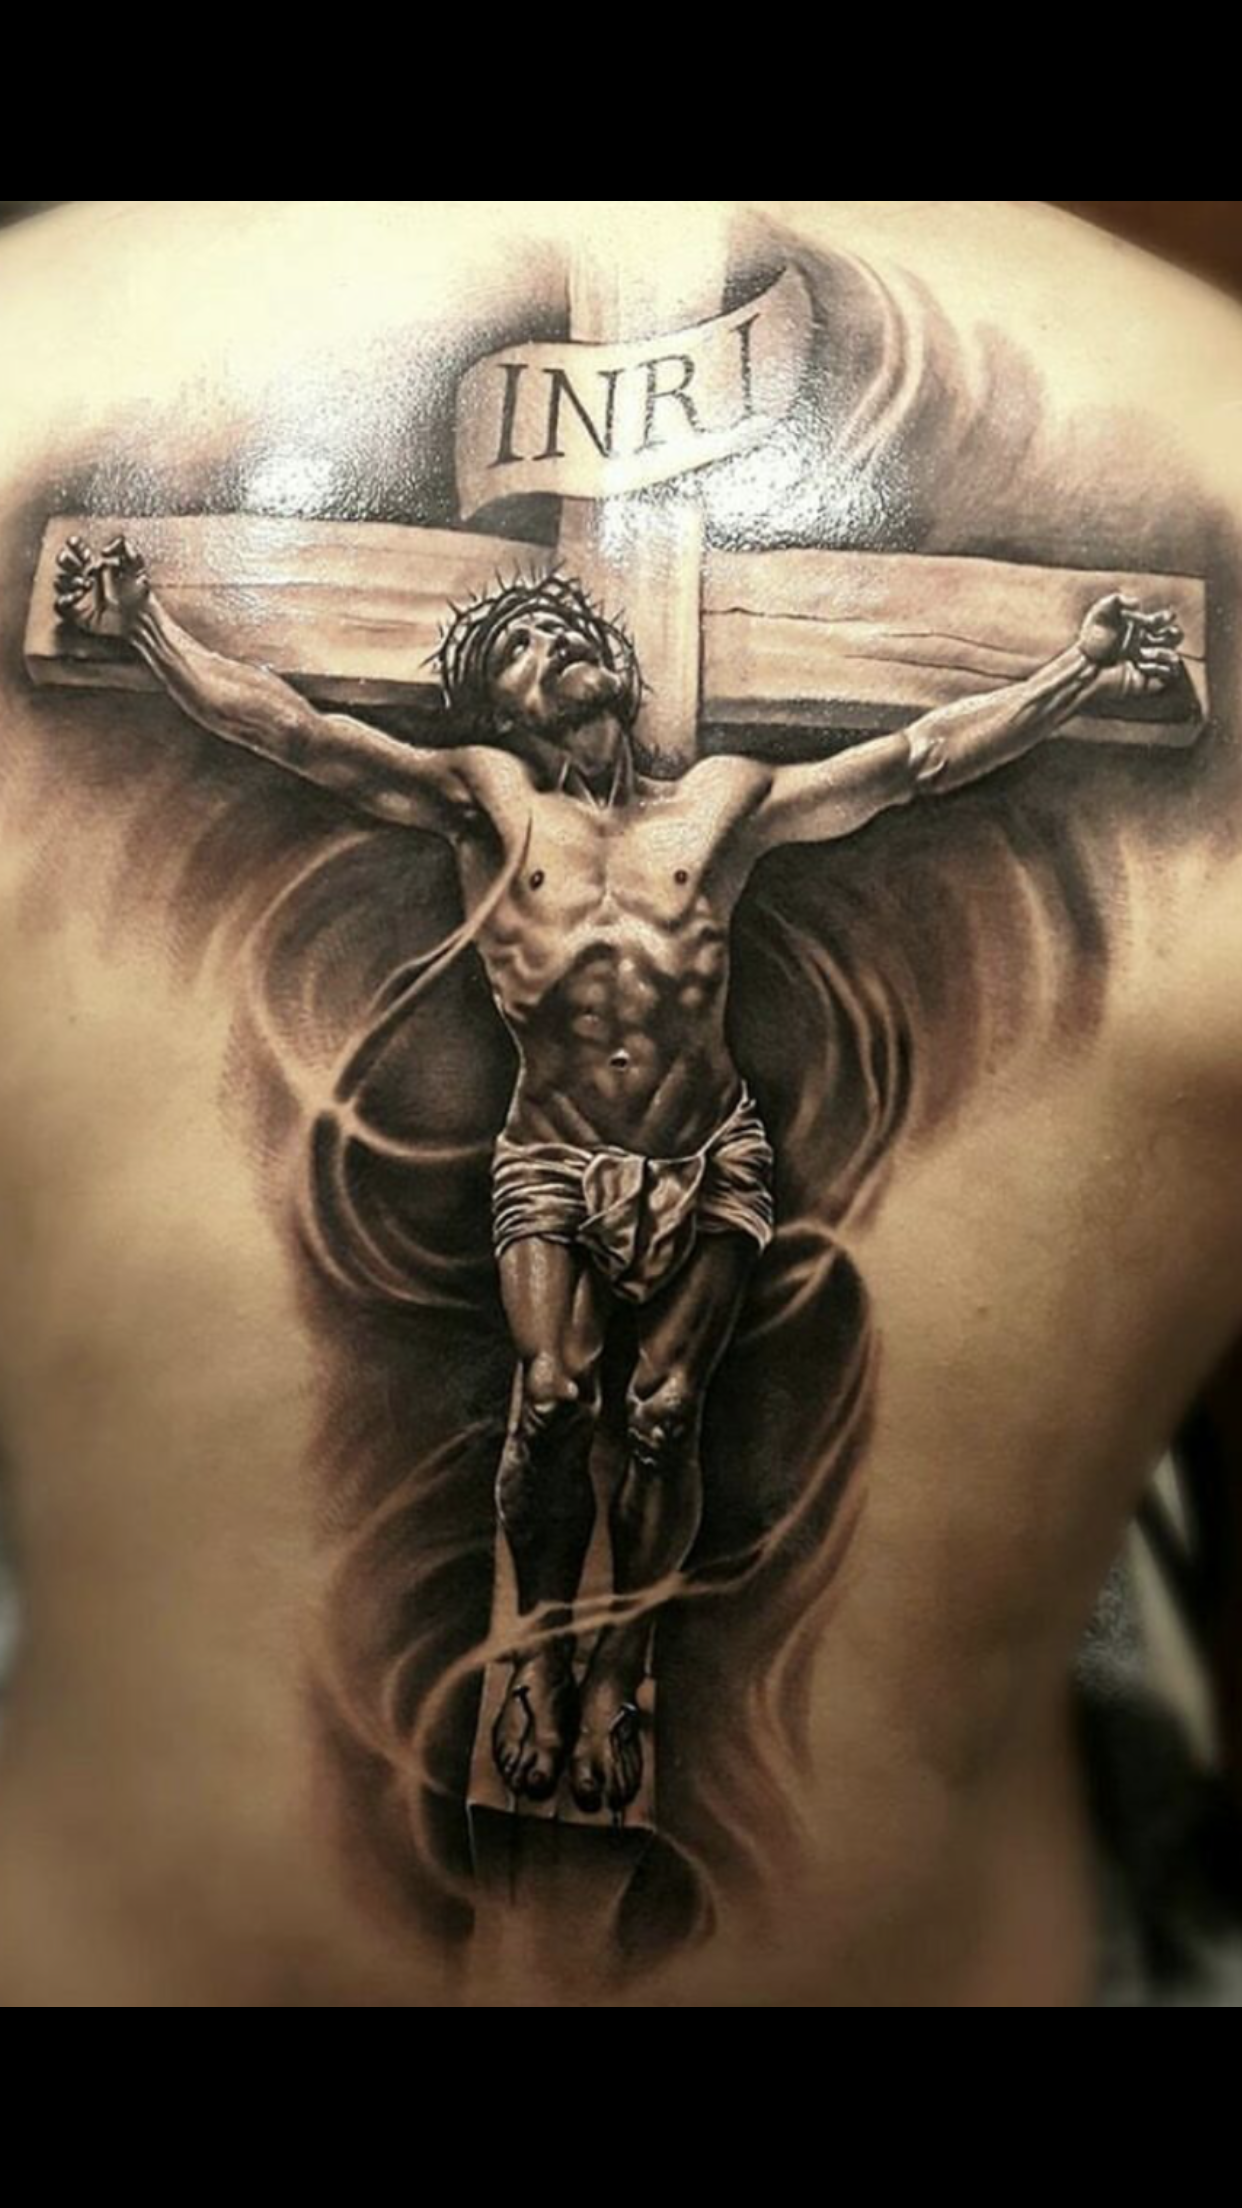 989adae18 Truely a work of art!!! | Photo | Jesus tattoo, Religous tattoo ...